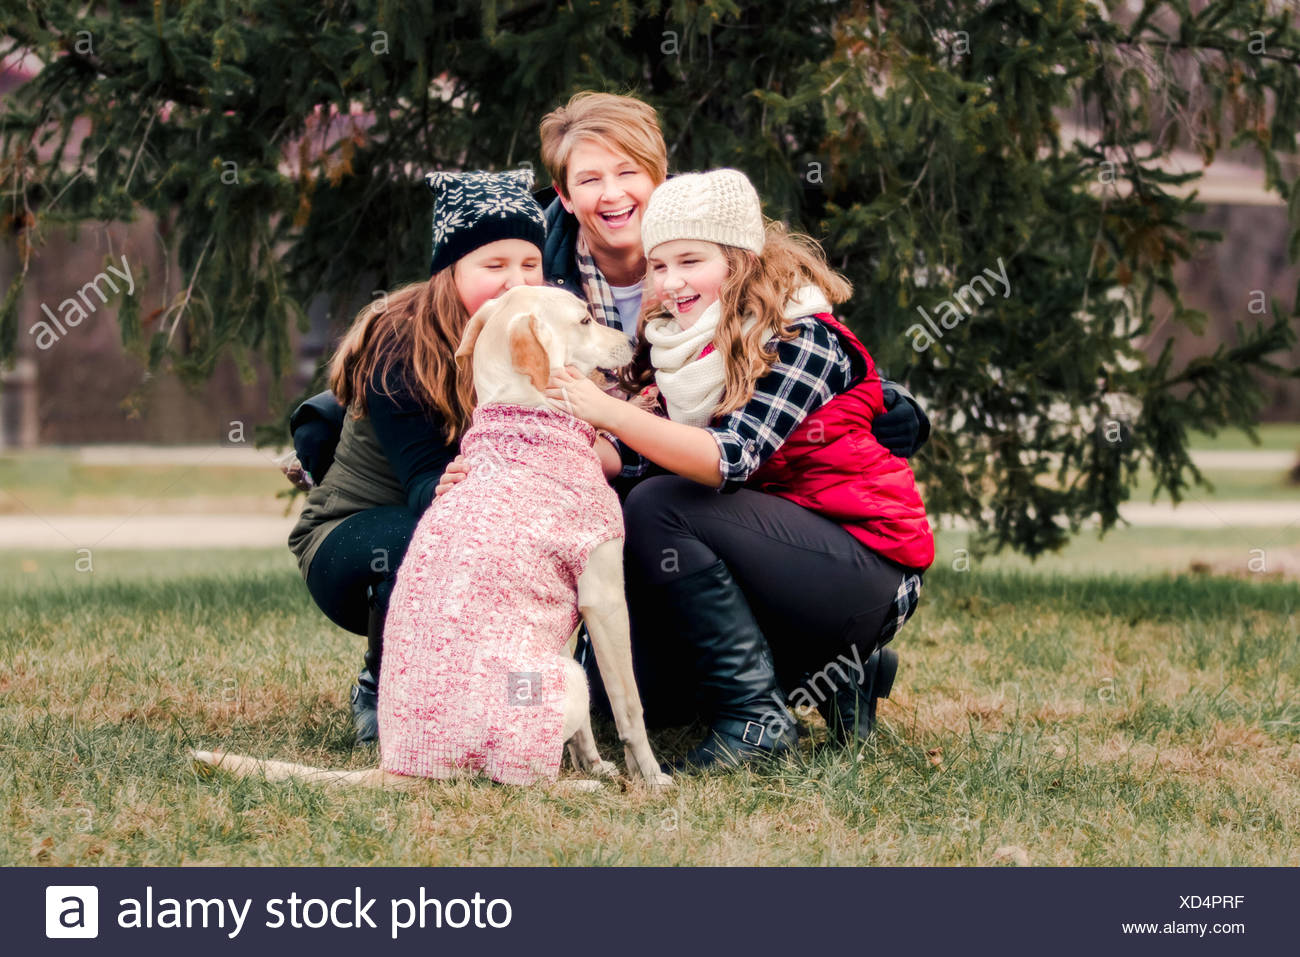 Sisters and their mother crouching to pet dog in garden - Stock Image